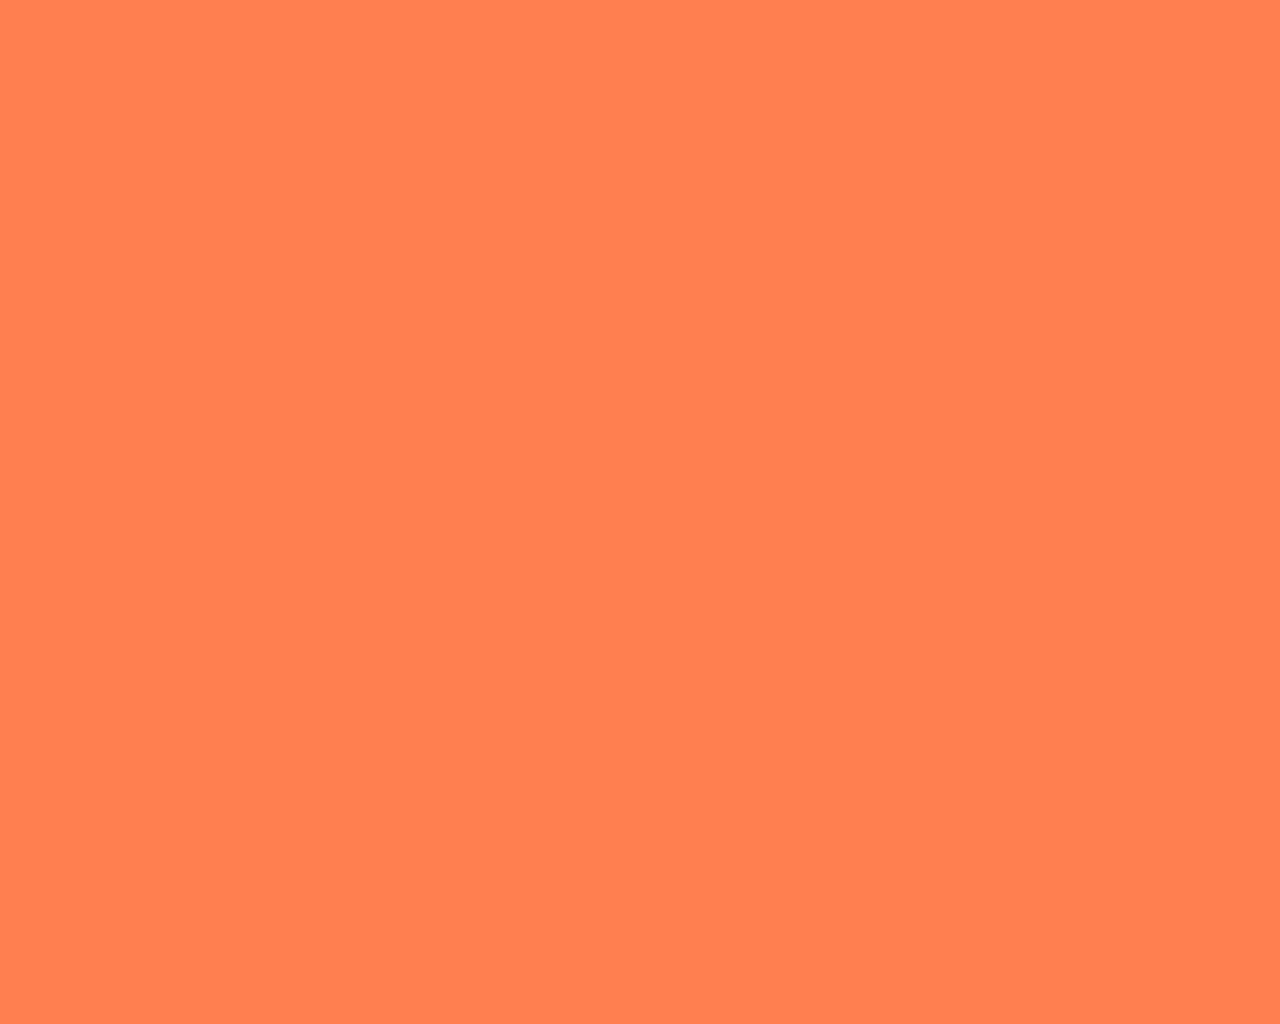 1280x1024 Coral Solid Color Background